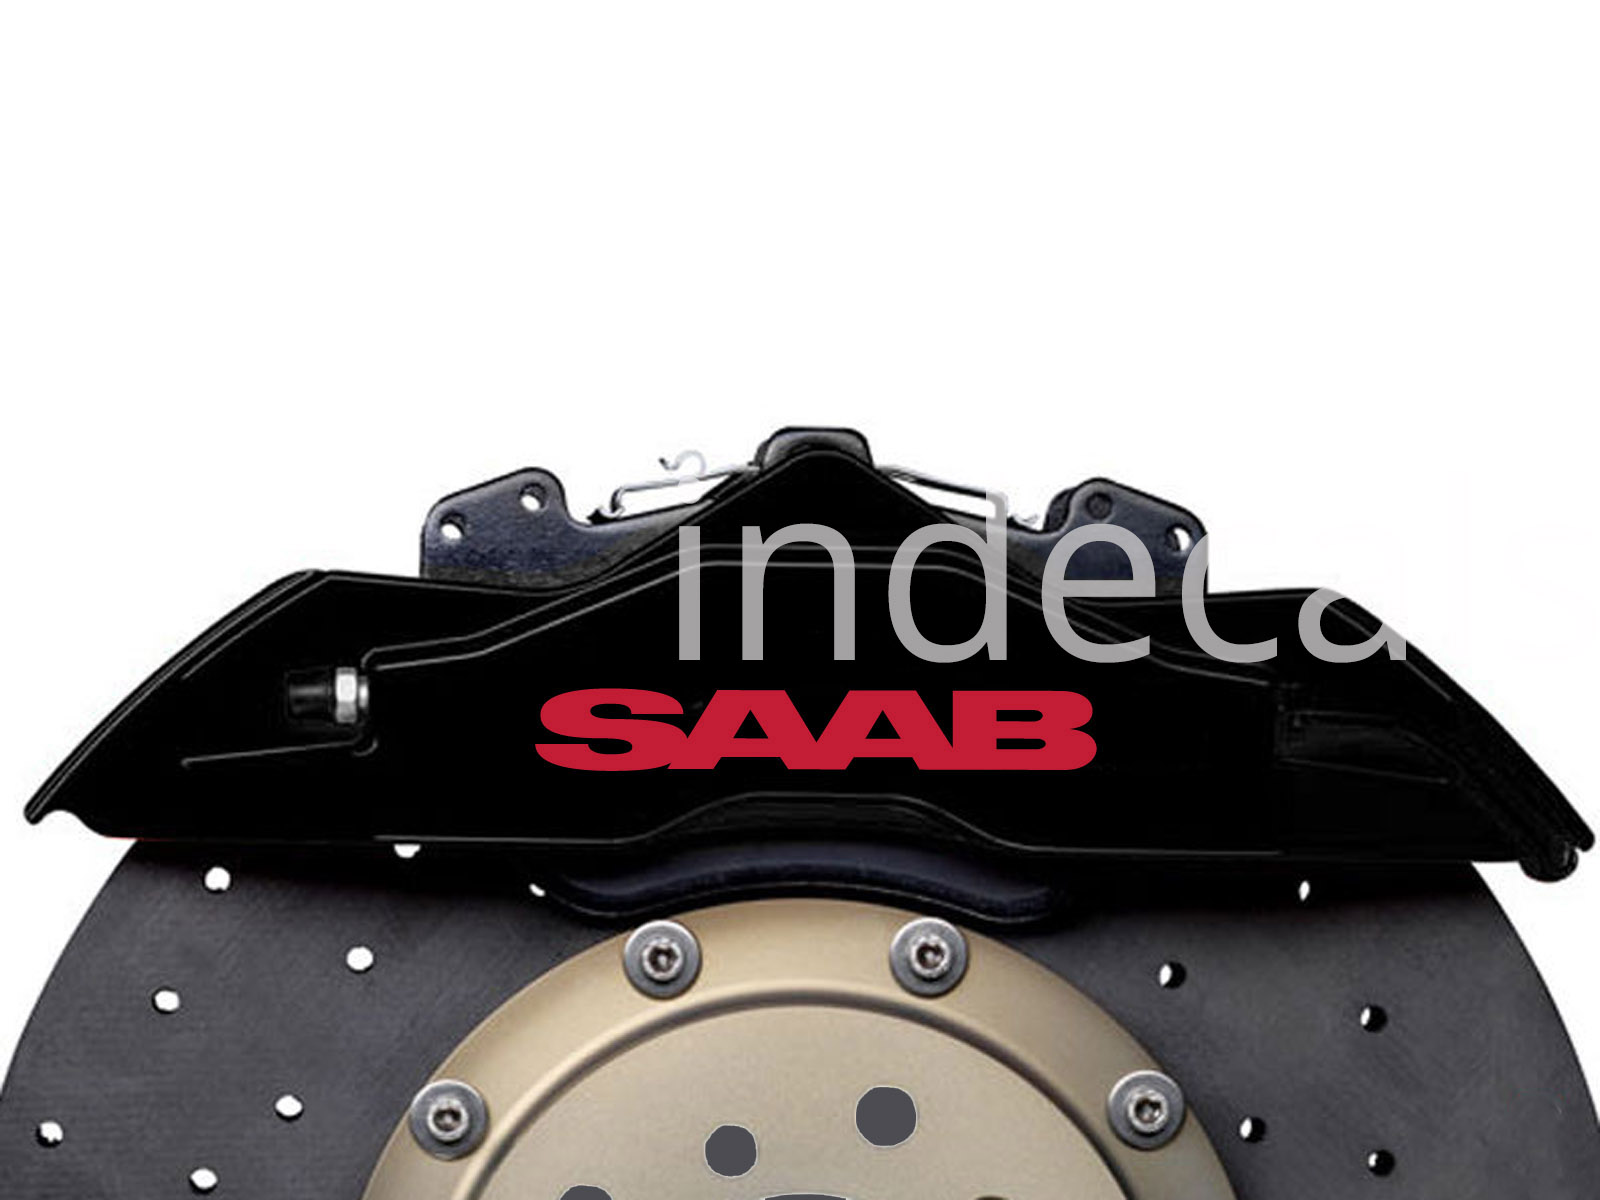 6 x Saab Stickers for Brakes - Red